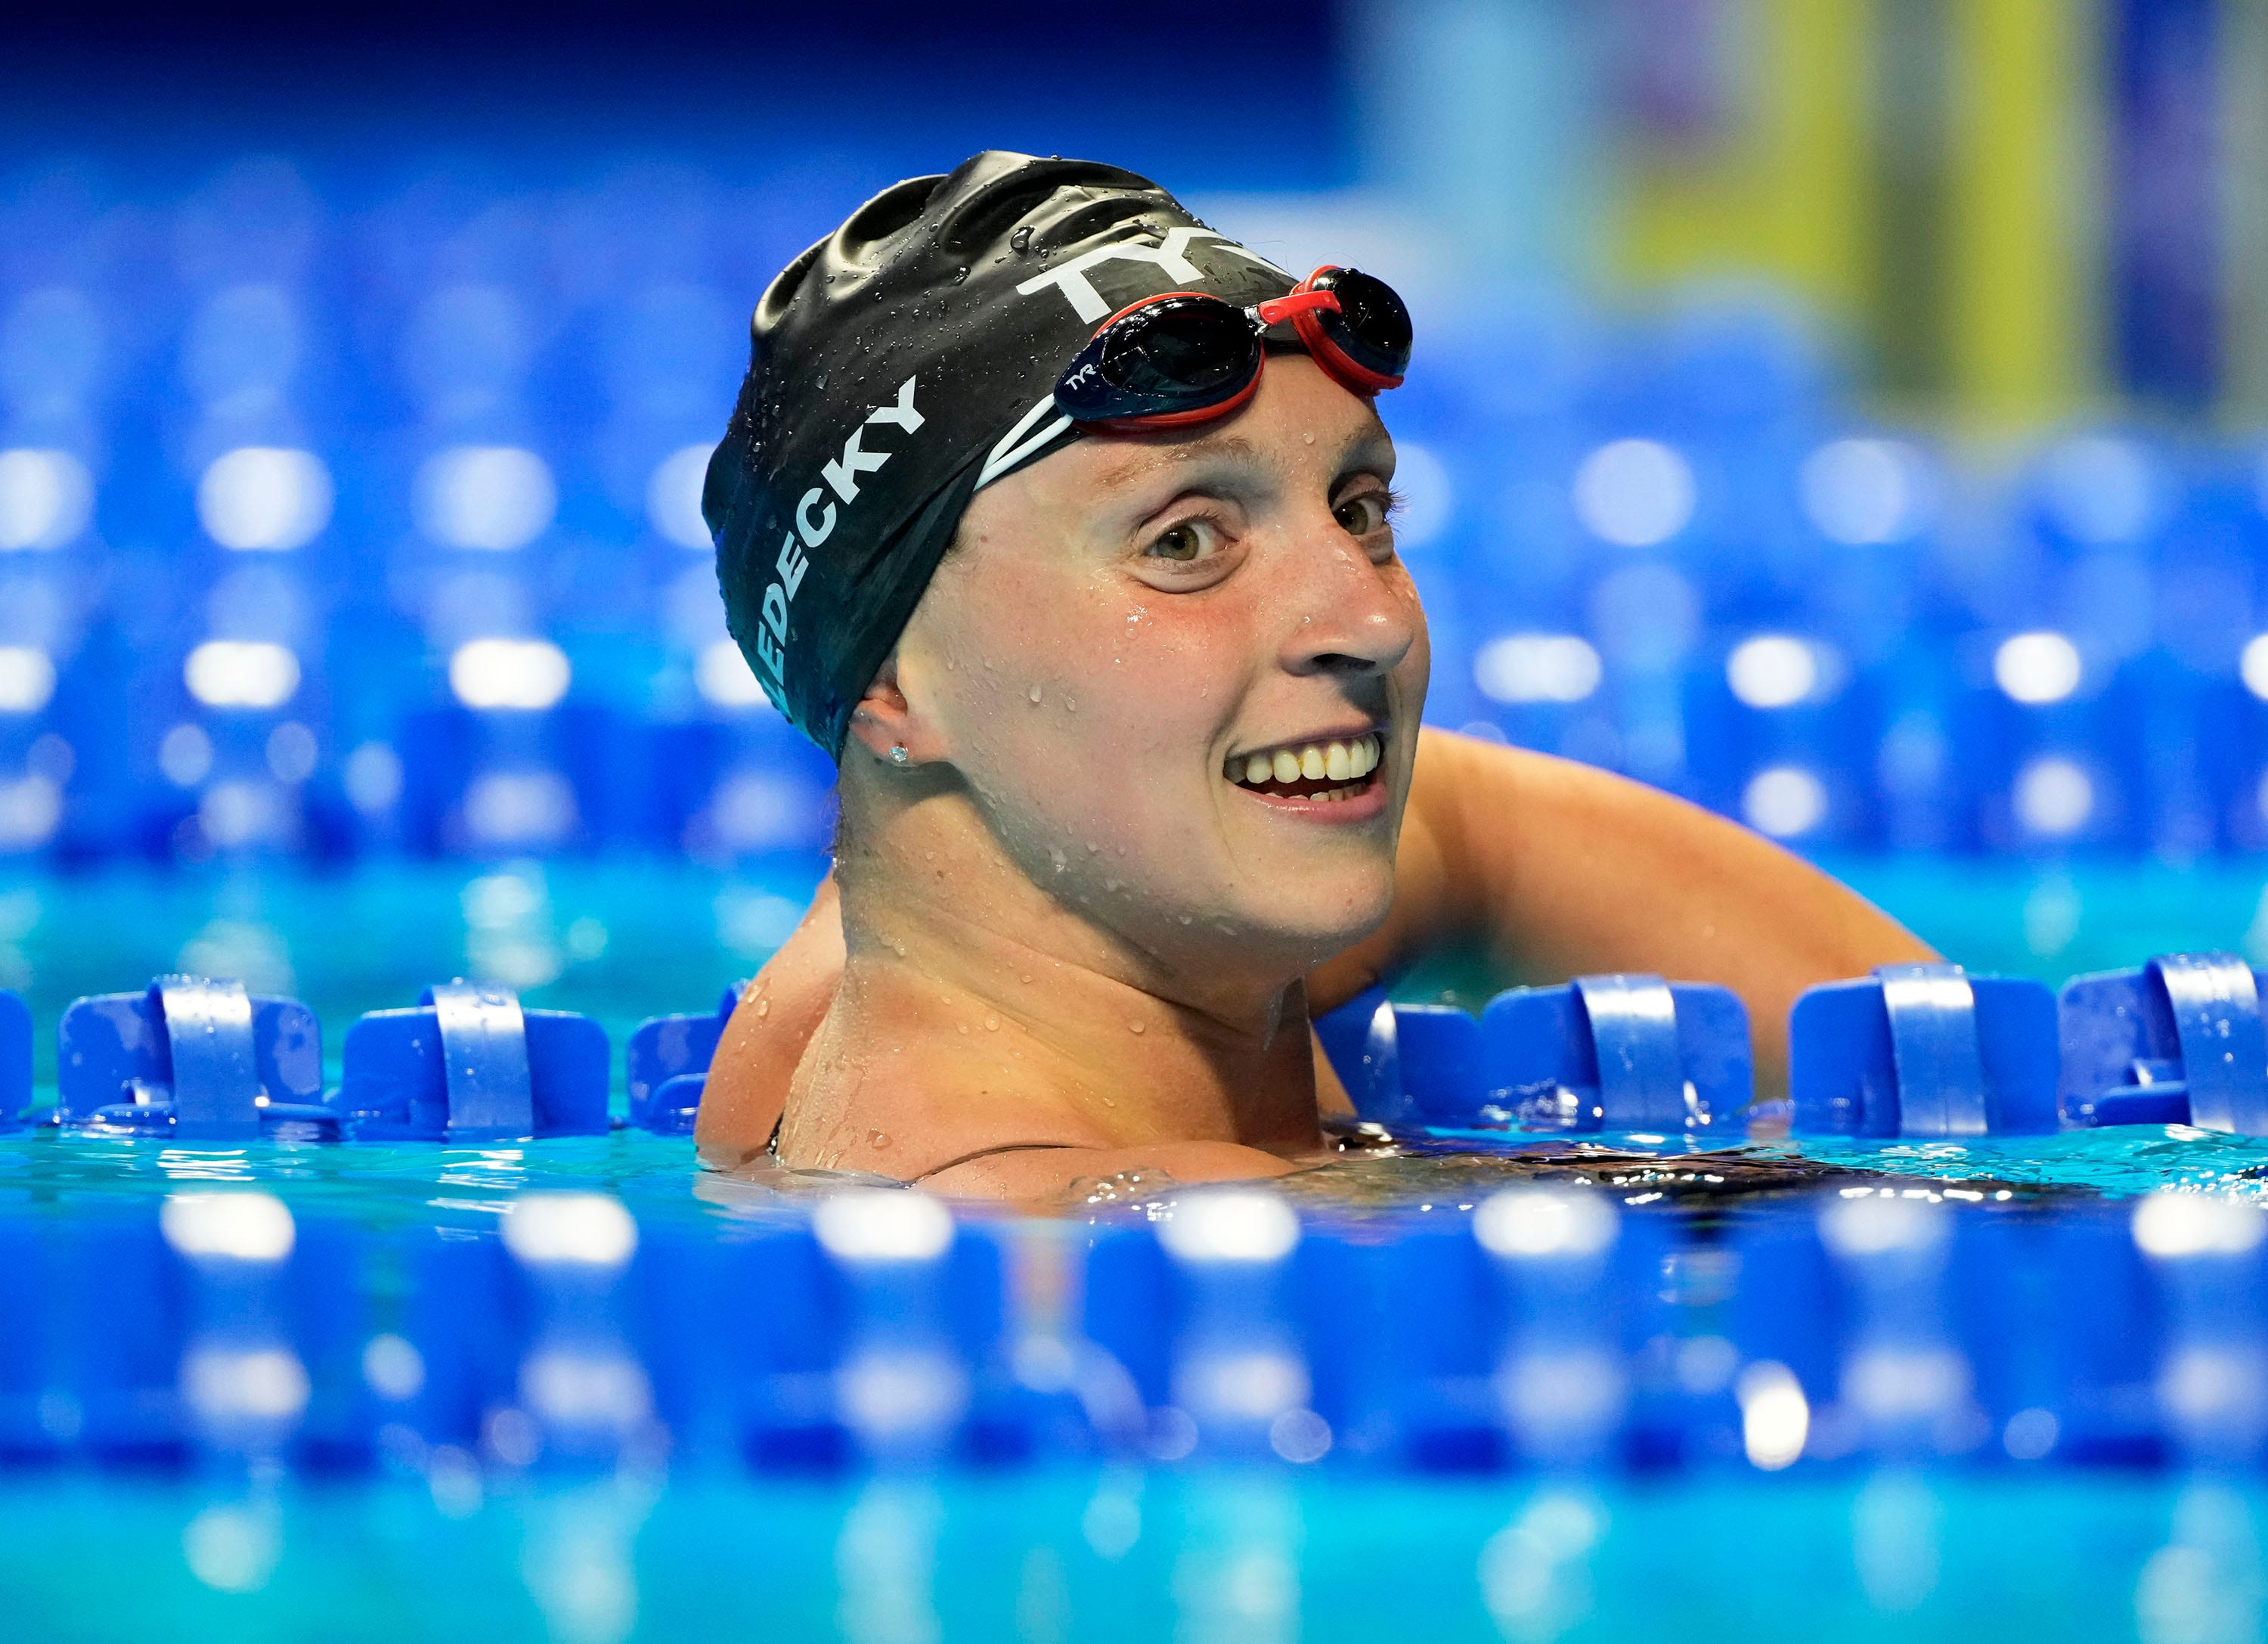 After shaking off nerves, Katie Ledecky tackles her toughest day at Olympic swim trials